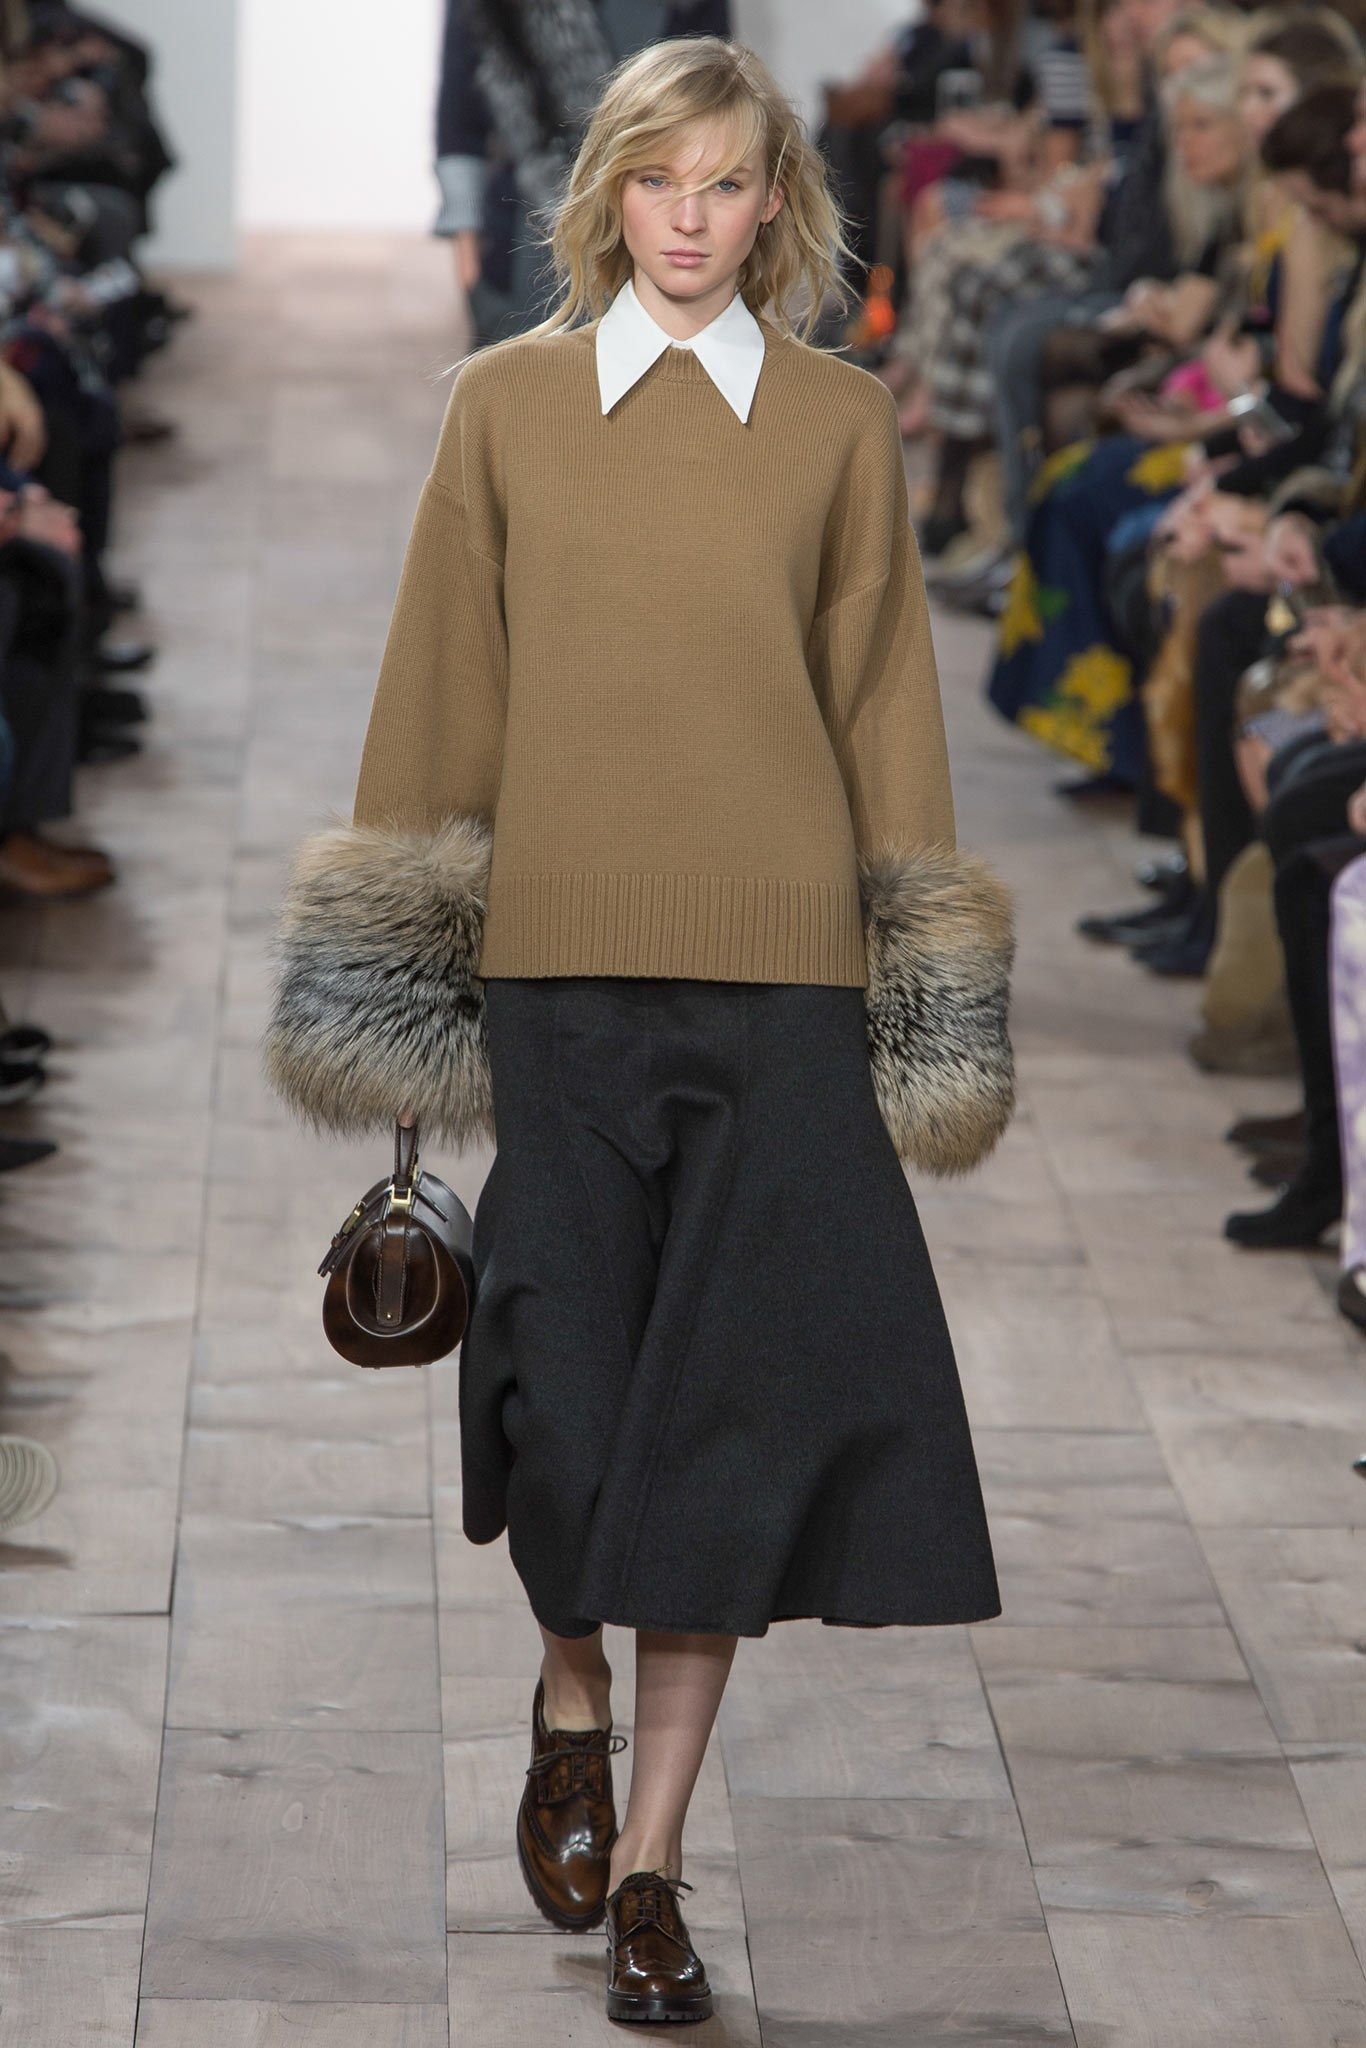 Michael Kors Collection Fall 2015 Ready-to-Wear Fashion Show - Nastya Sten